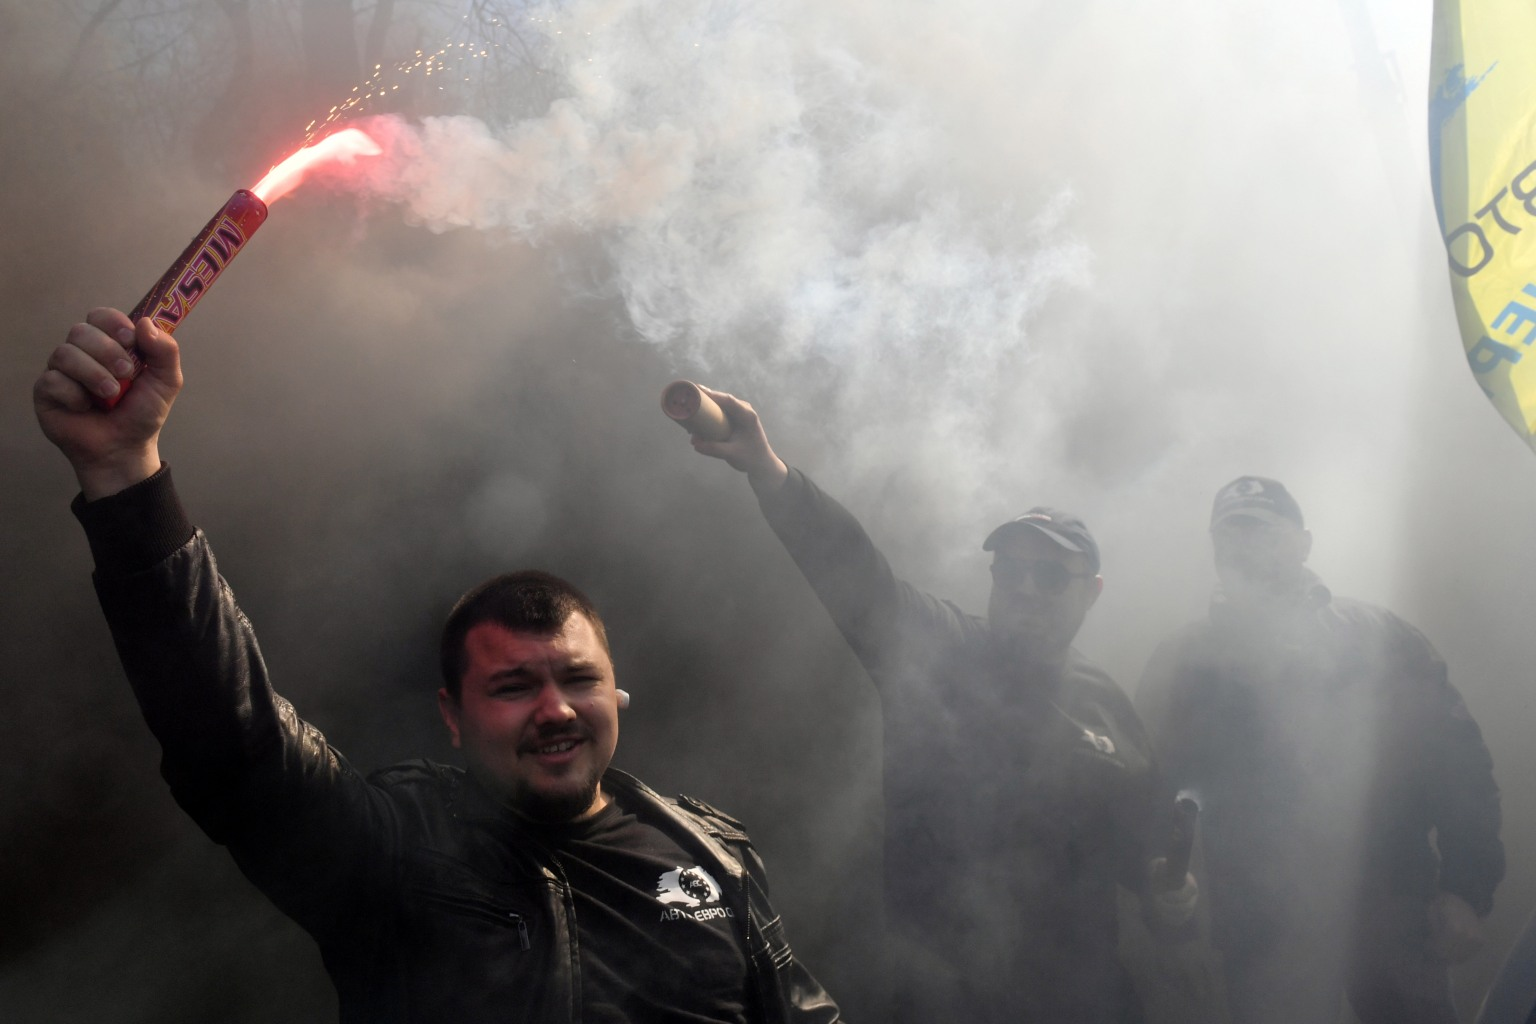 A protester holds a burning smoke bomb as he takes part in a demonstration by AutoEuroPower movement activists near the Ukrainian Cabinet building in Kiev on April 18. Activists protested against a possible reduction of gasoline imports initiated by a number of Ukrainian producers and against the increased price of domestic-made gasoline. SERGEI SUPINSKY/AFP/Getty Images